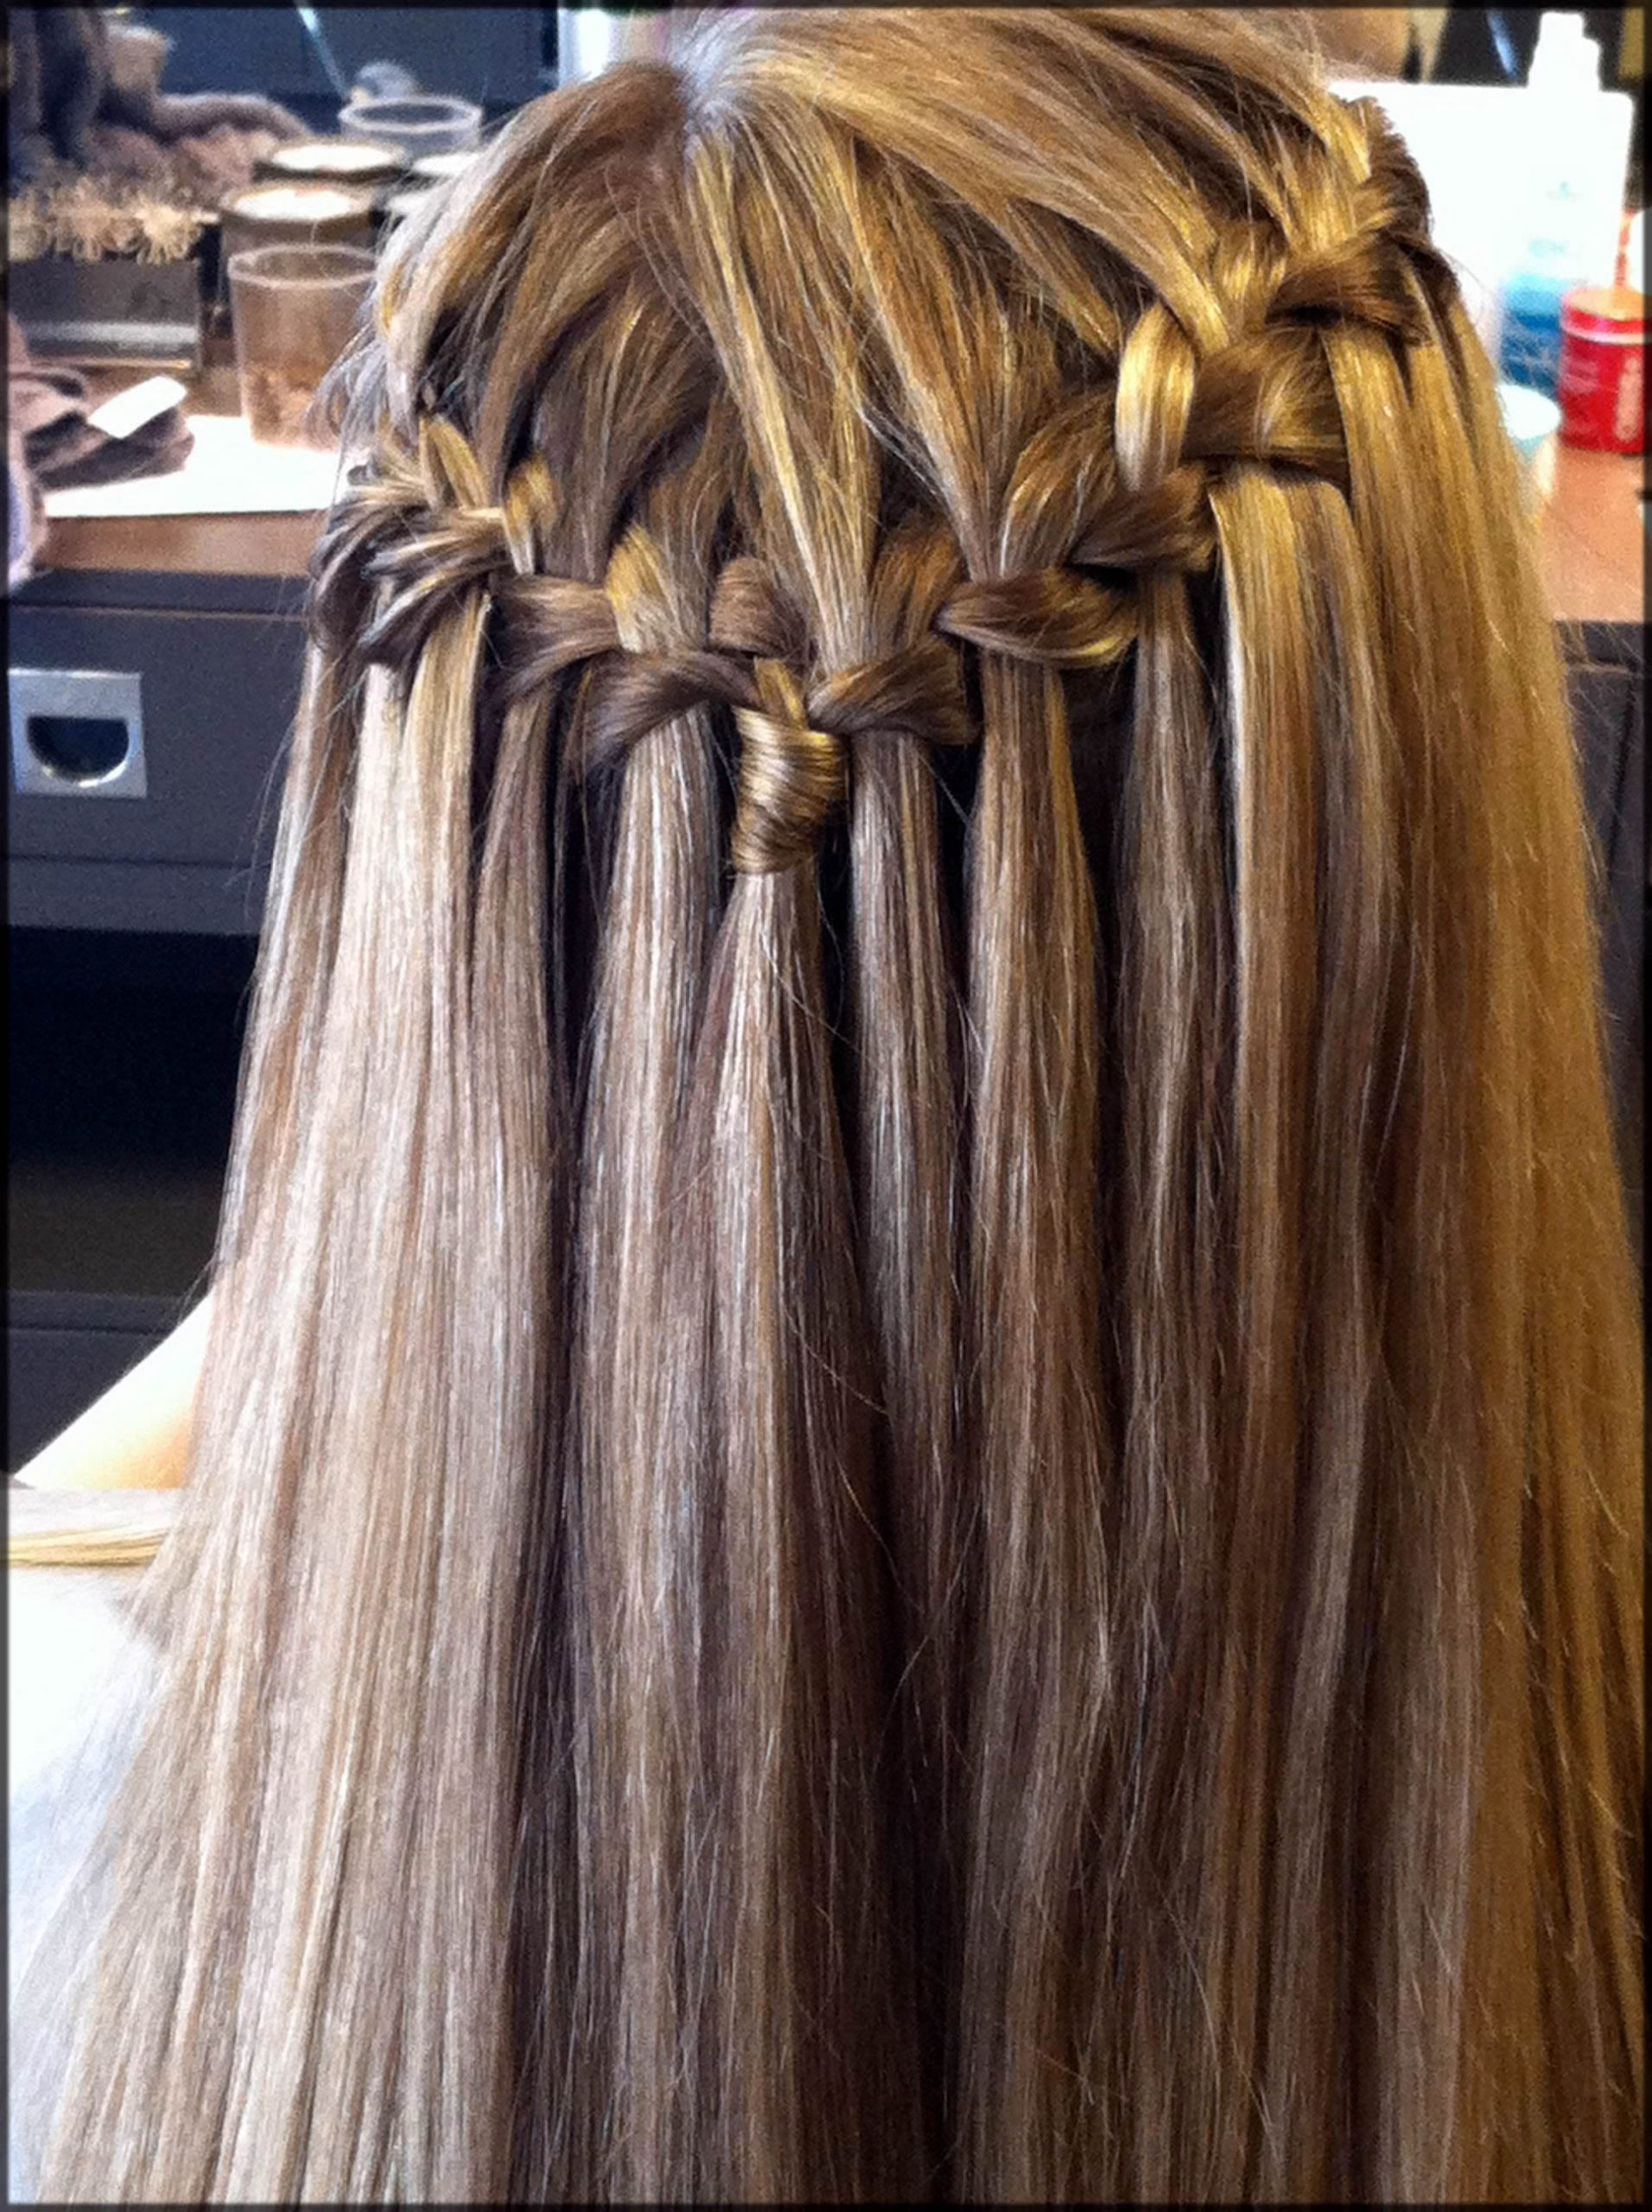 classy eid hairstyles for girls 2020